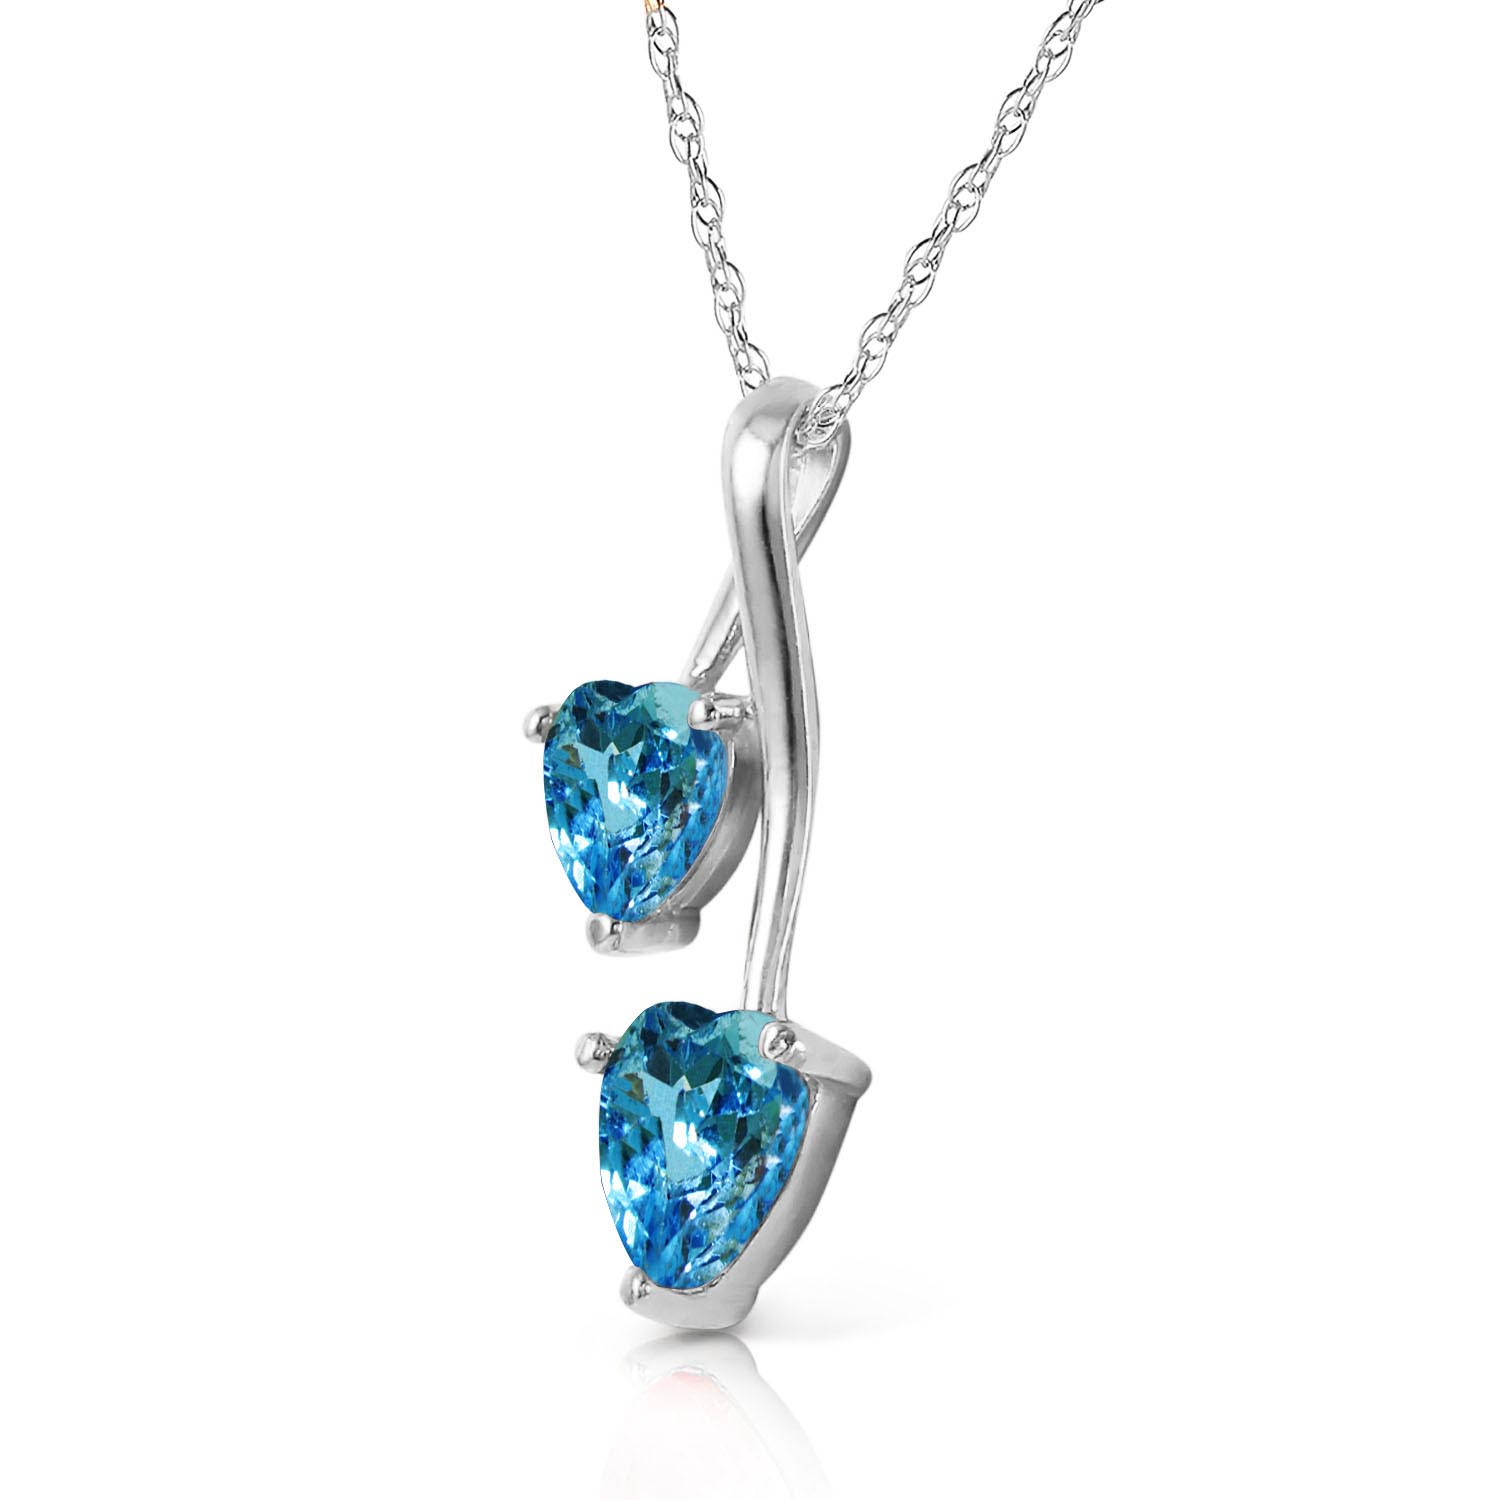 Blue Topaz Twin Heart Pendant Necklace 1.4ctw in 9ct White Gold